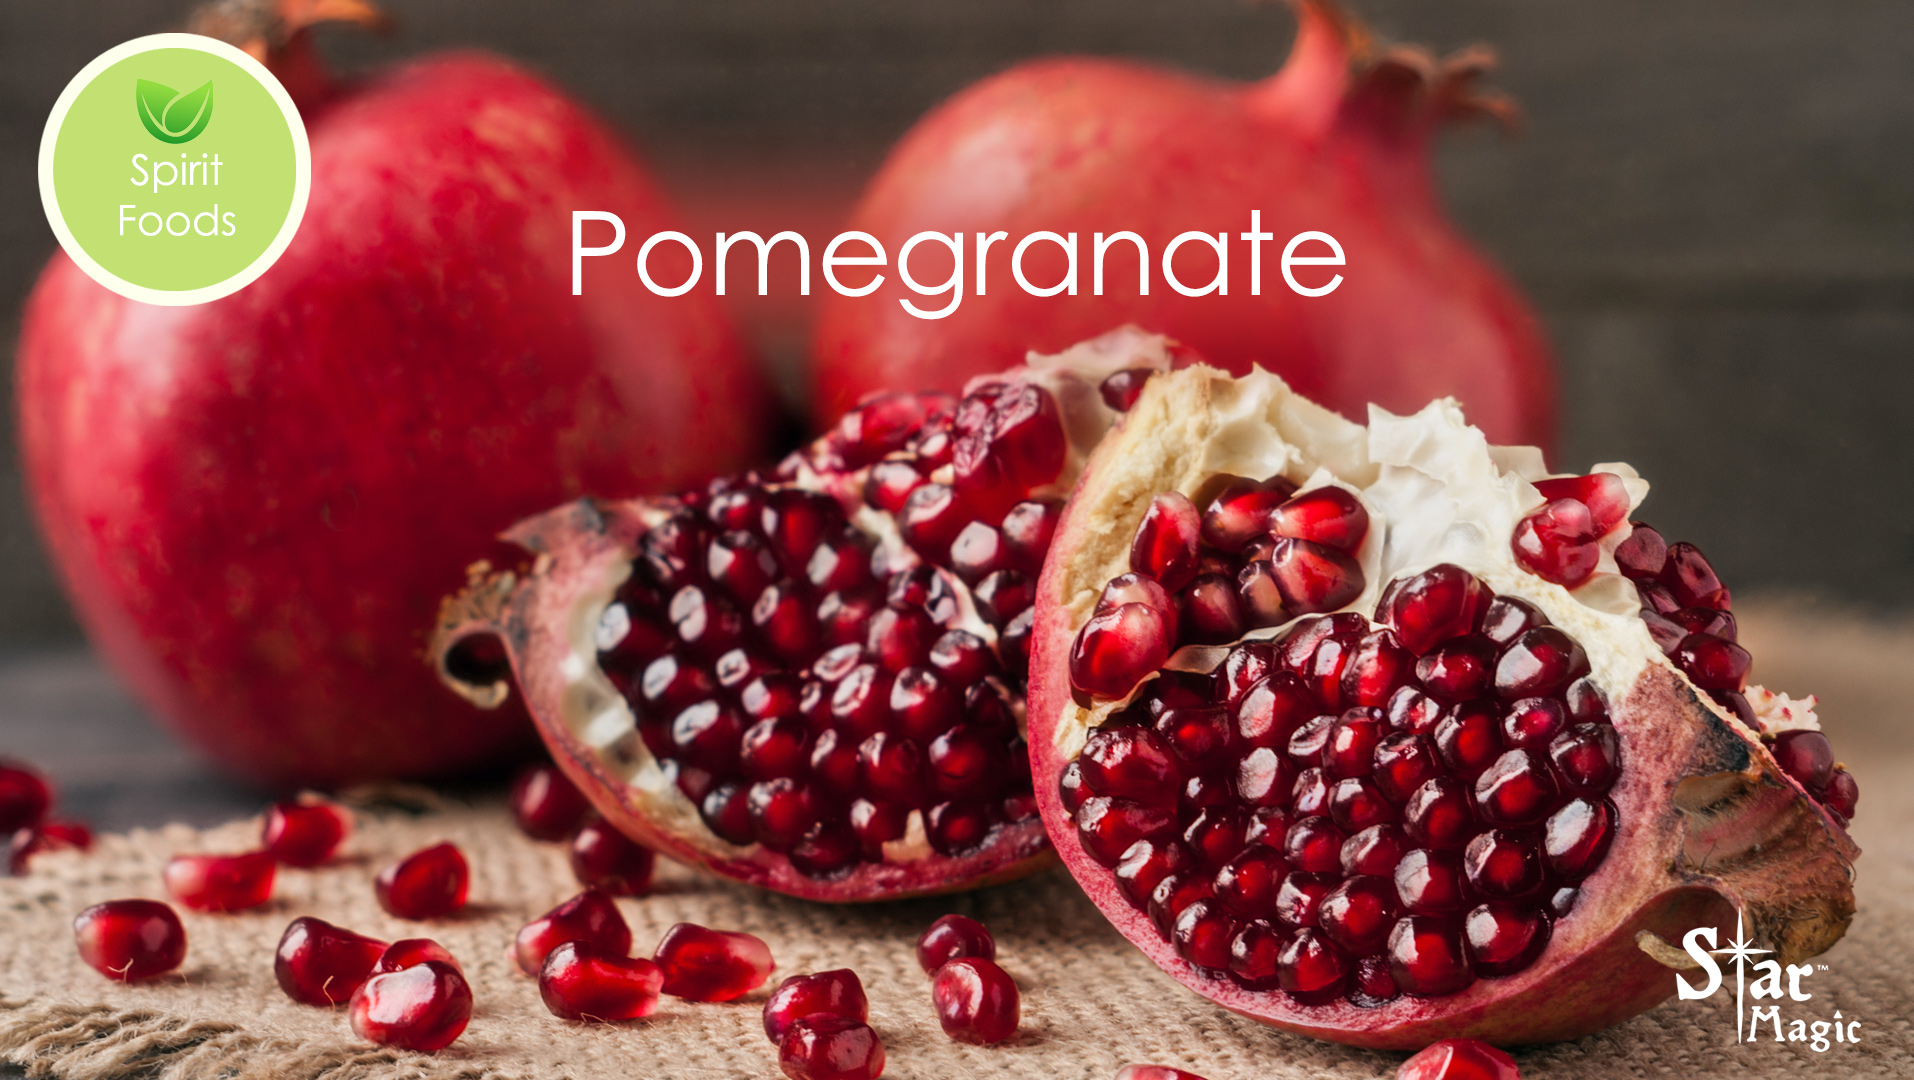 Spirit Food – Pomegranate